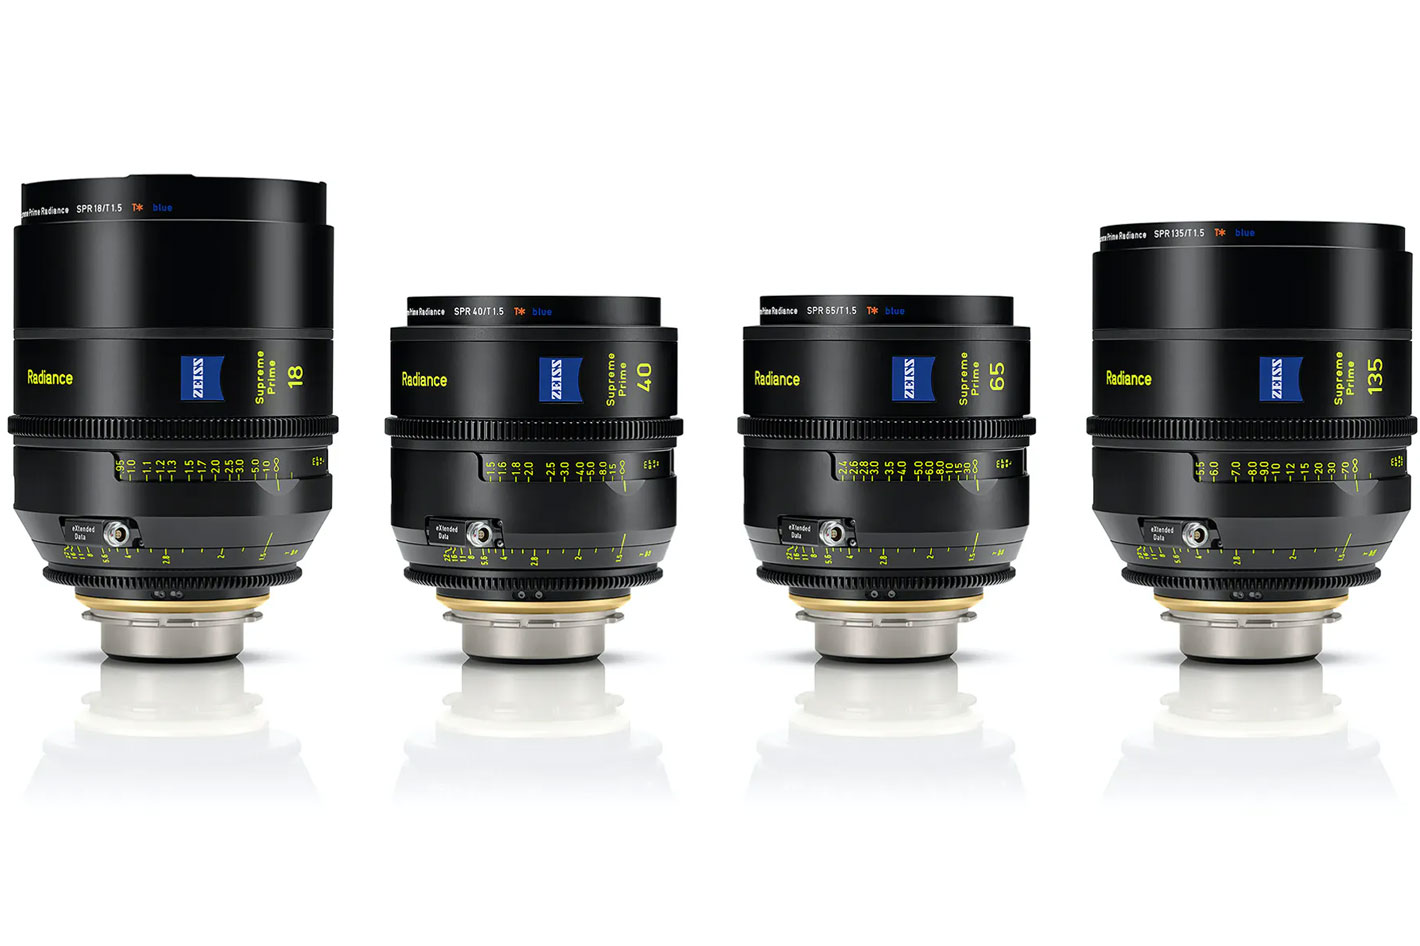 ZEISS introduces four new Supreme Prime Radiance lenses